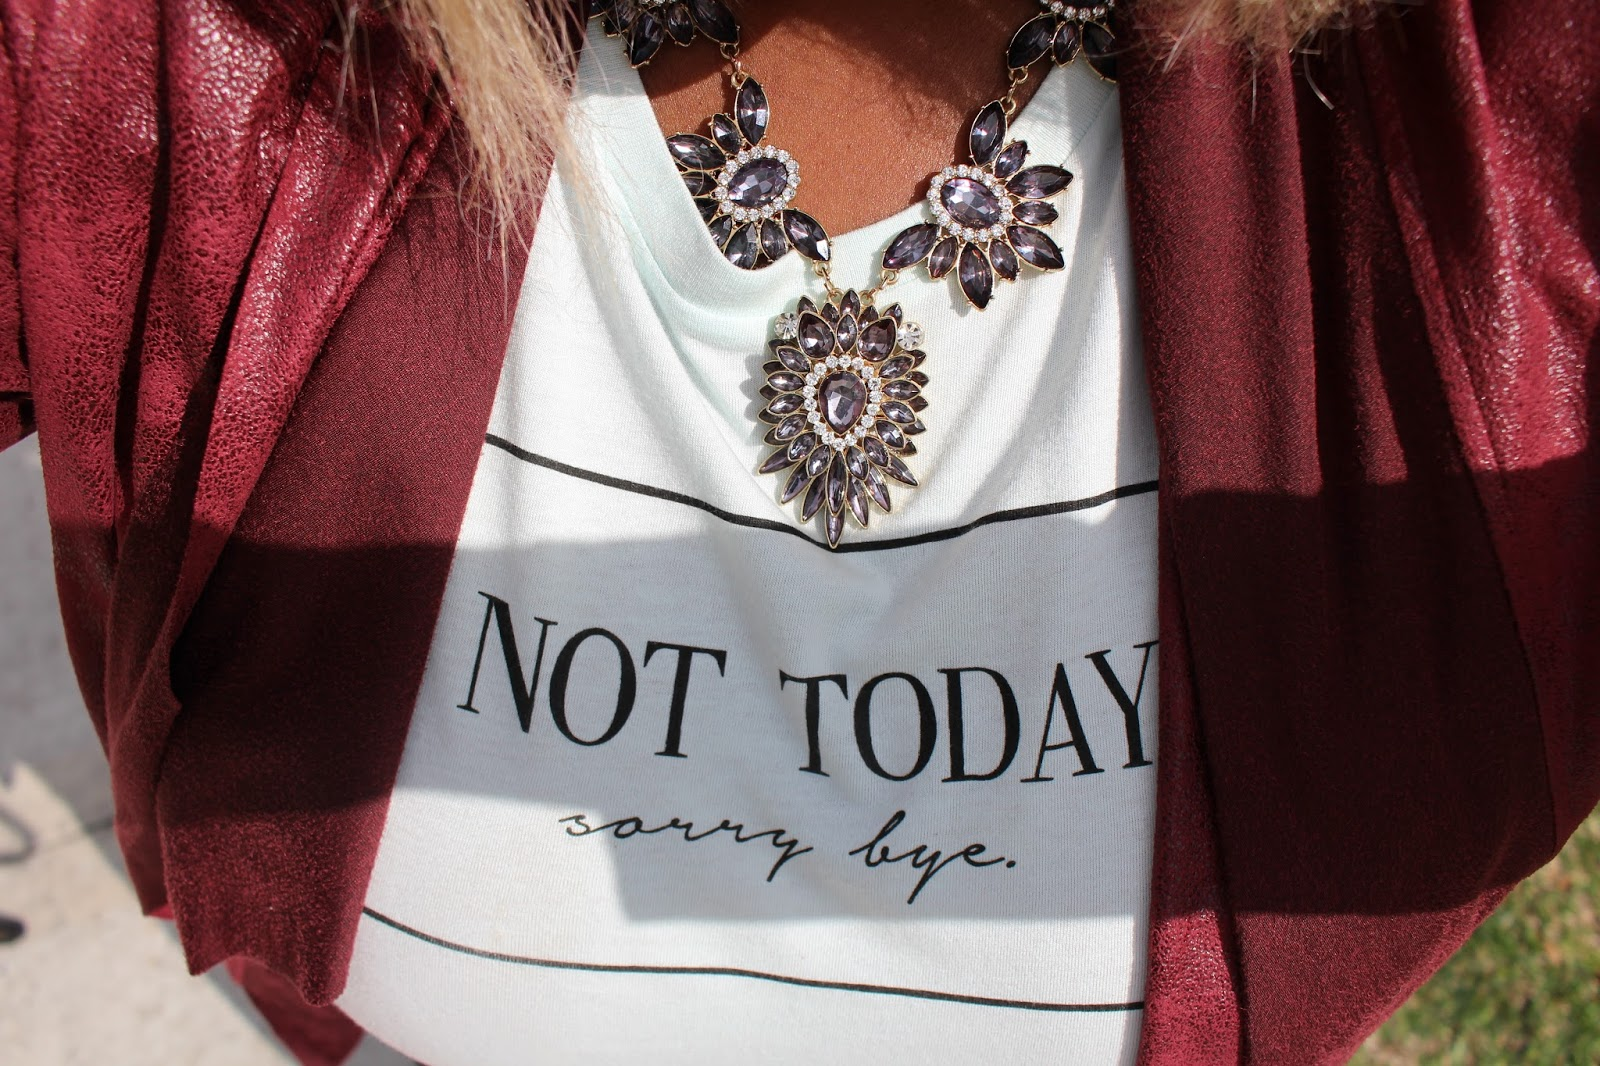 Not Today Sorry Bye T-Shirt via Live Life in Style